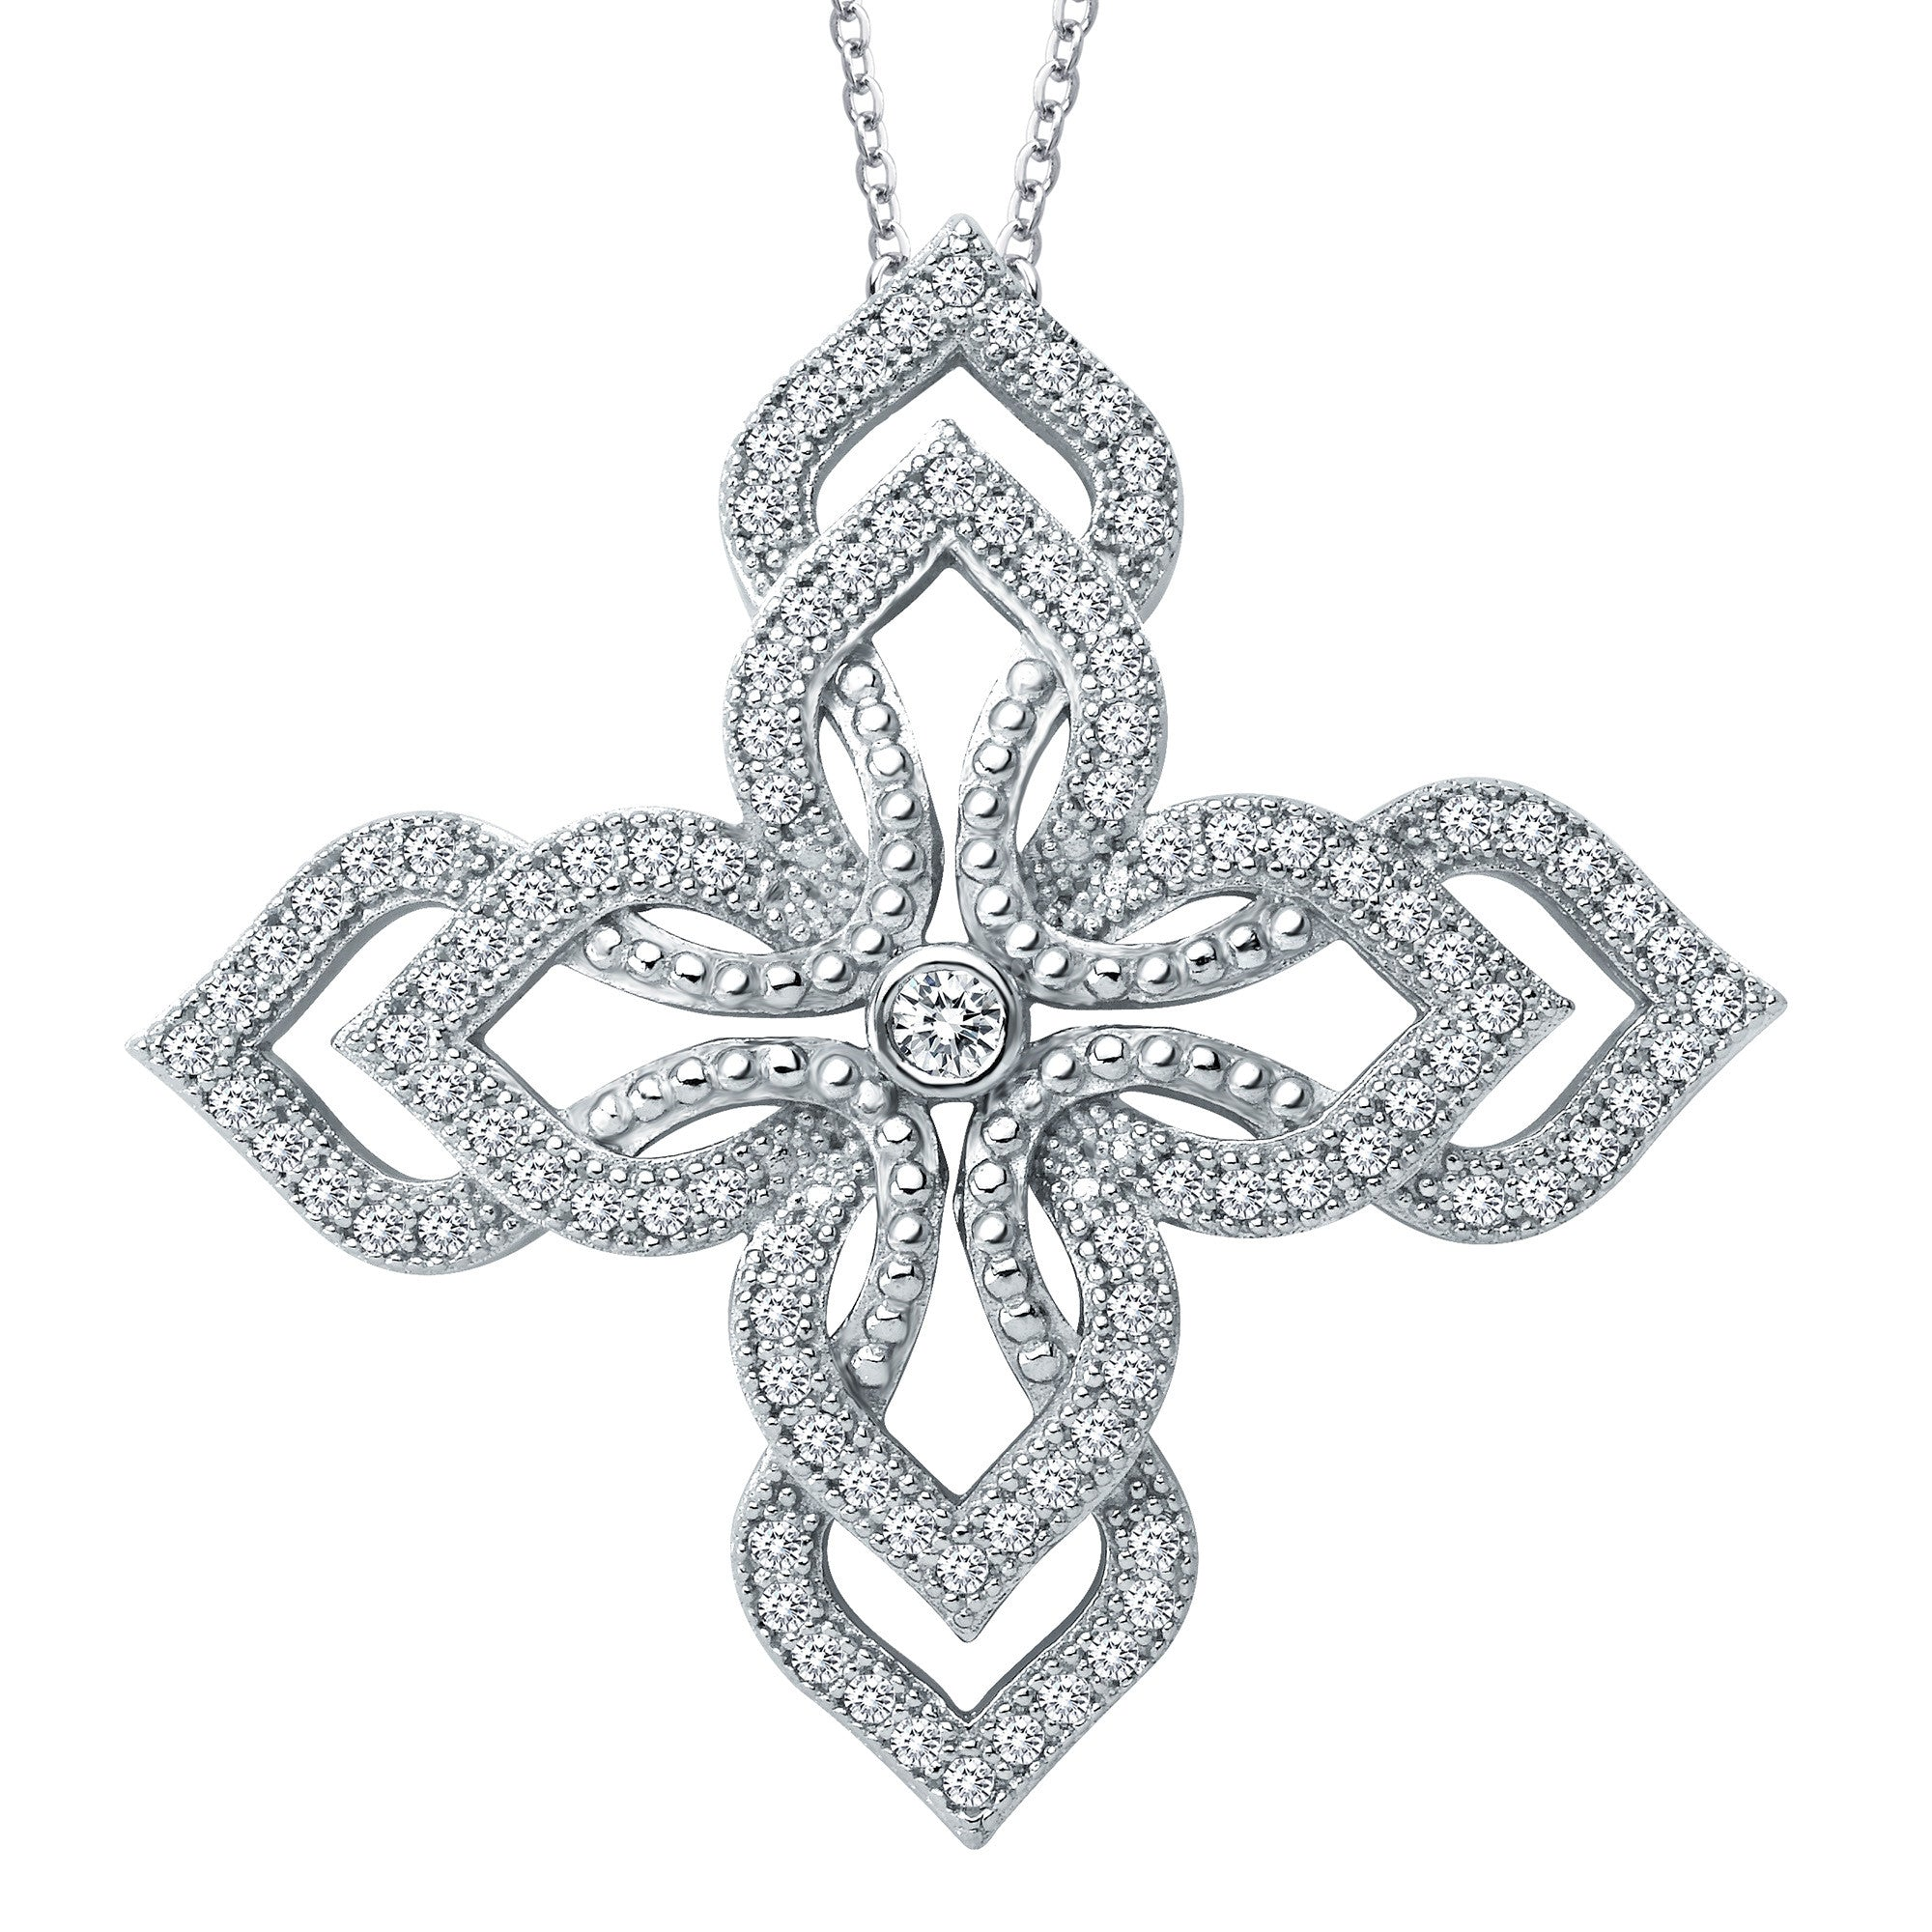 Simulated Diamonds Sterling Silver and Platinum Floral Necklace by Lafonn